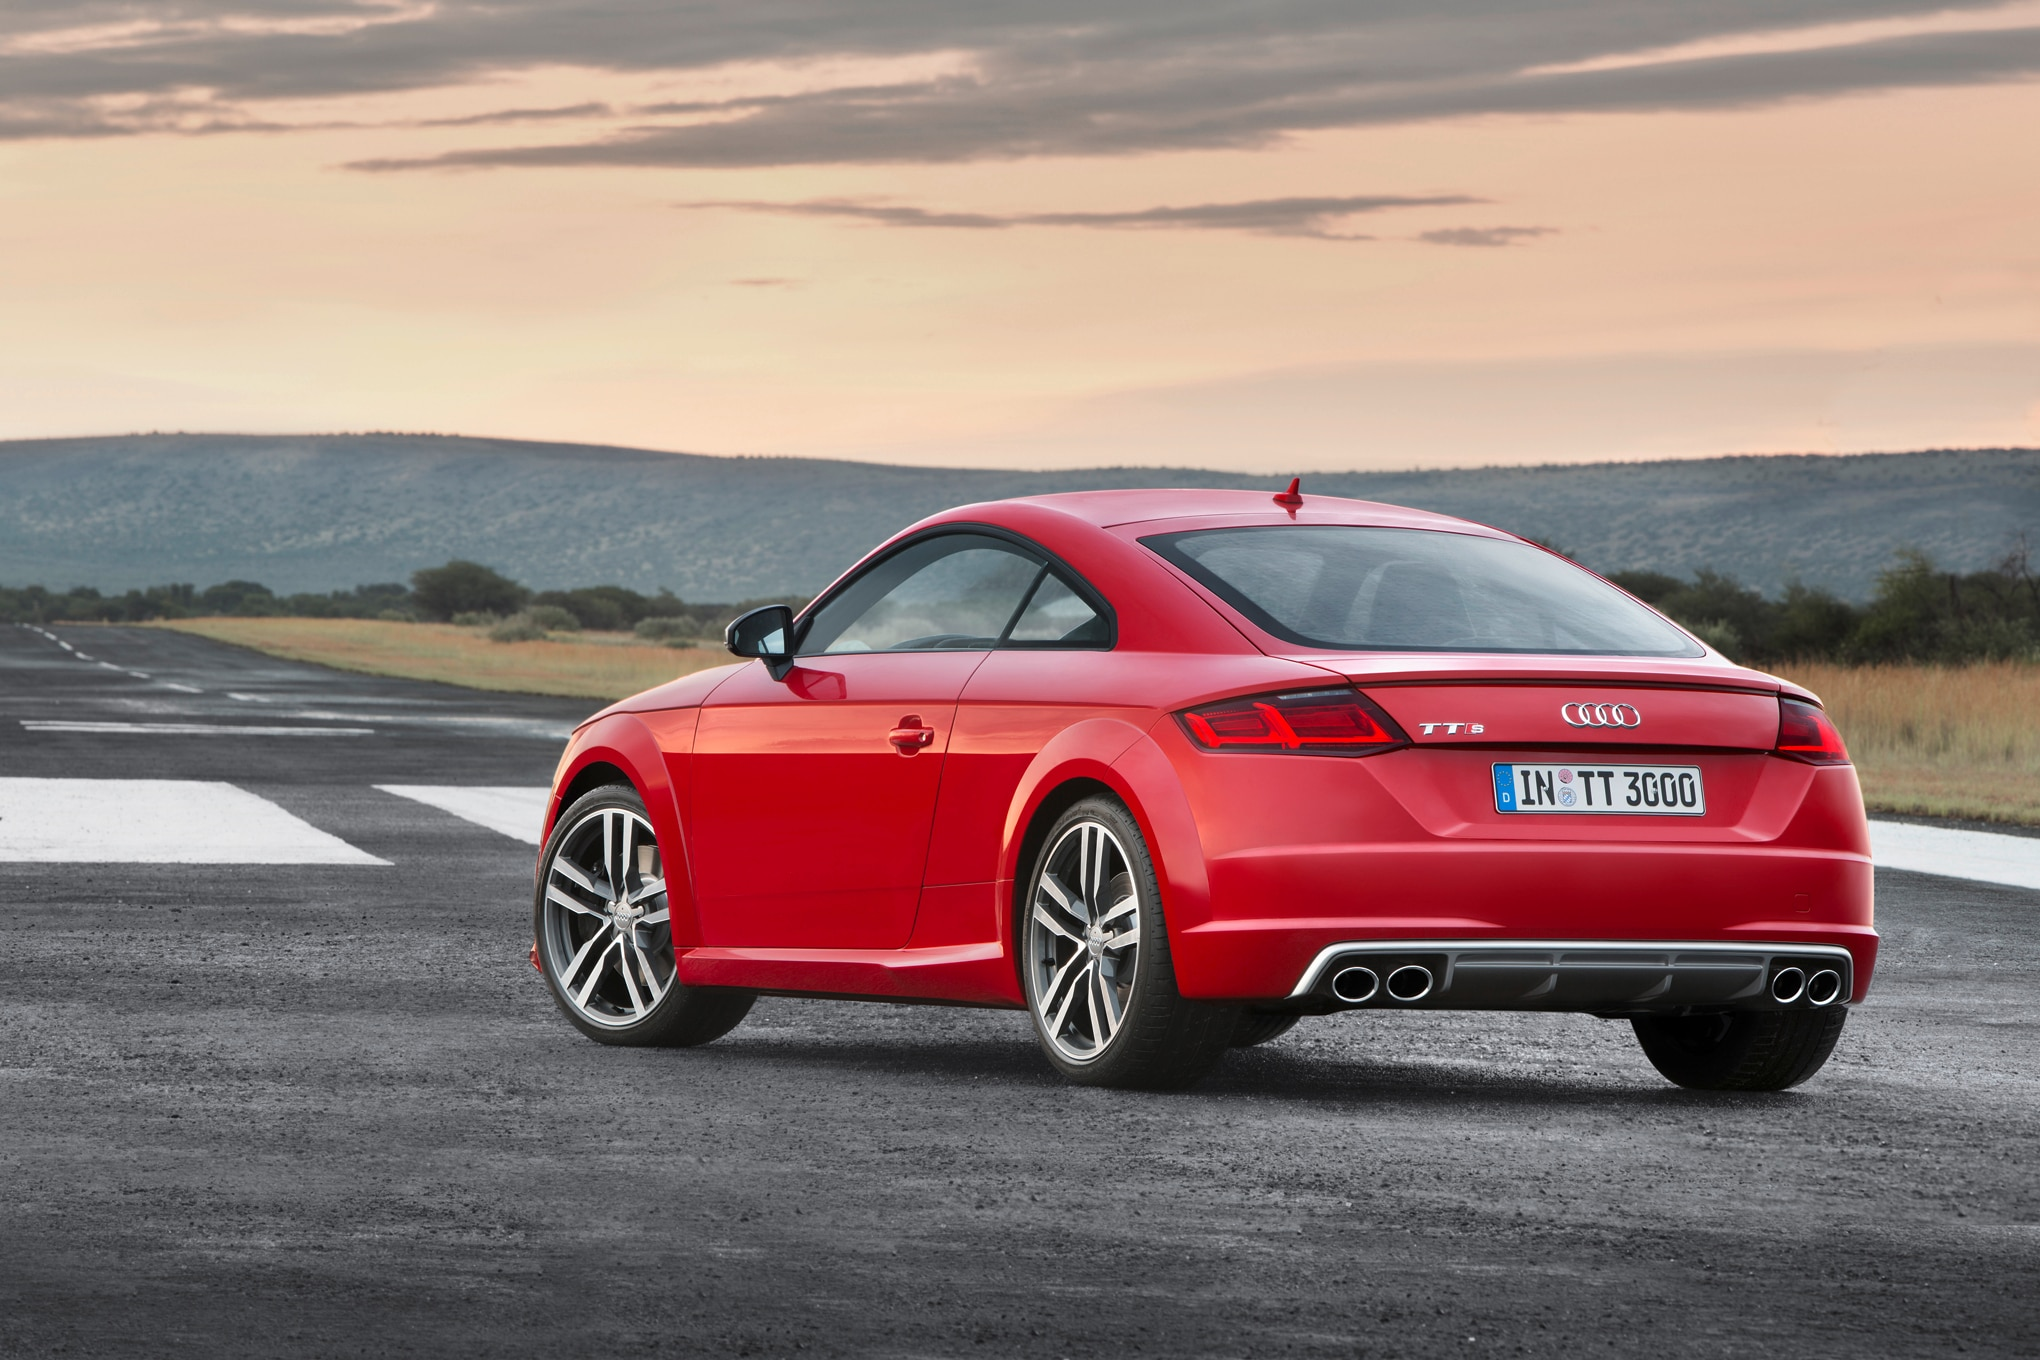 Awesome 2016 Audi TT And TTS Roadster Headed For Paris Auto Show